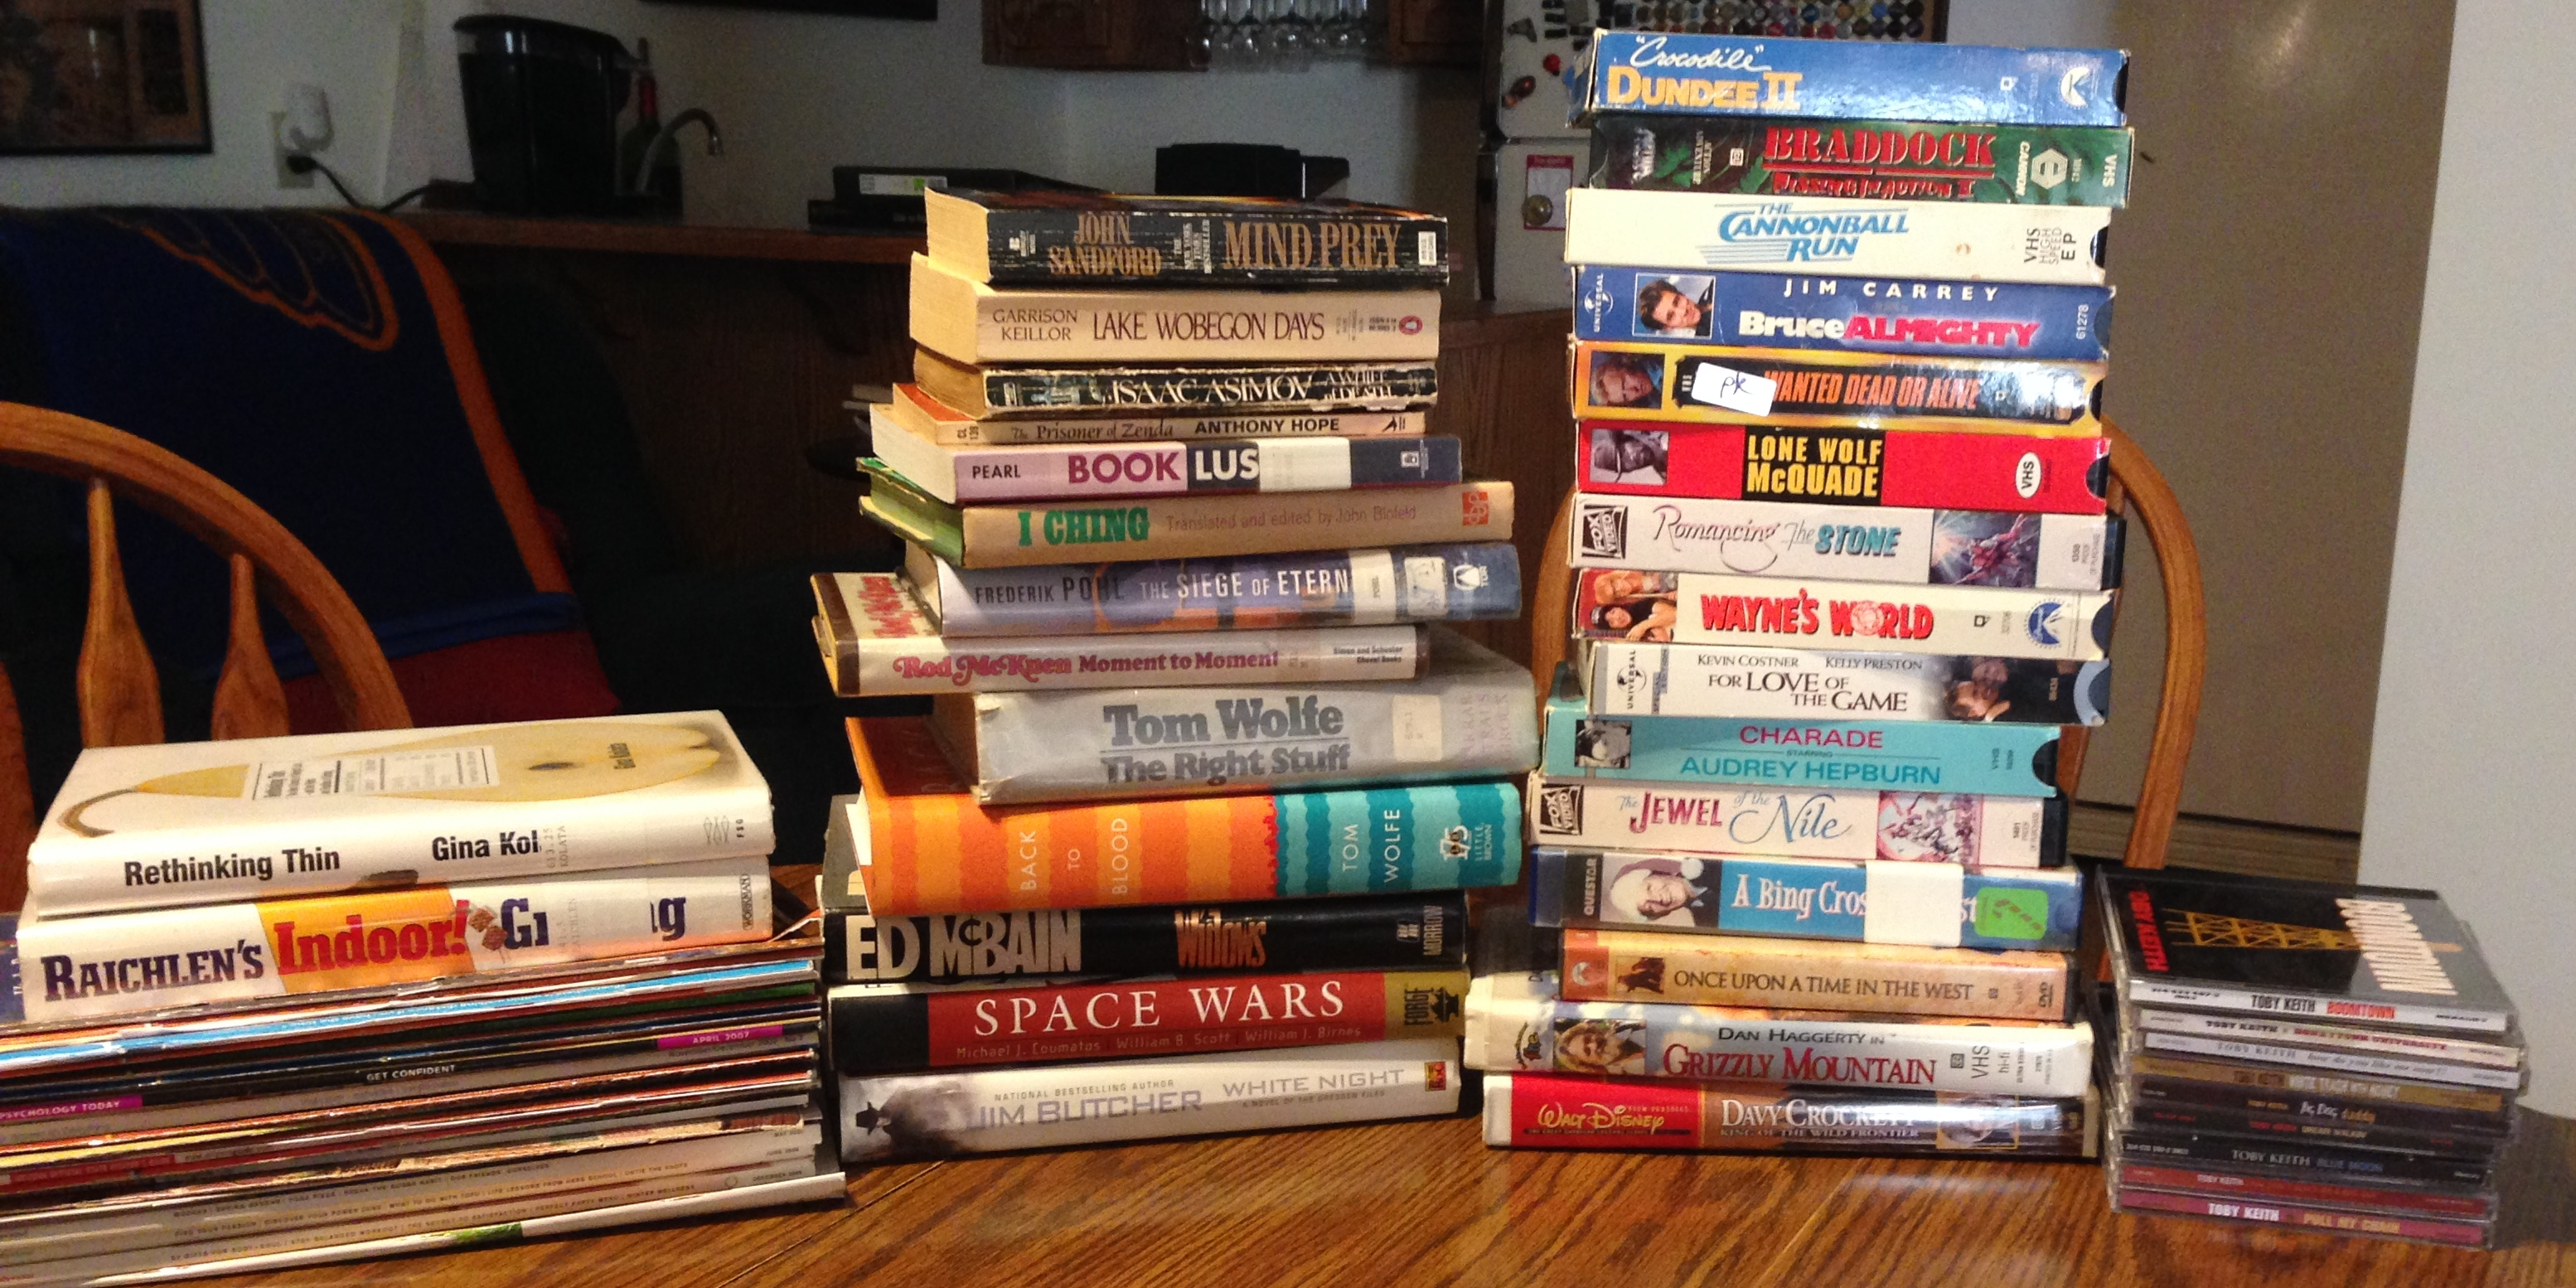 Friends of the Christian County Library book sale October 2015 purchases